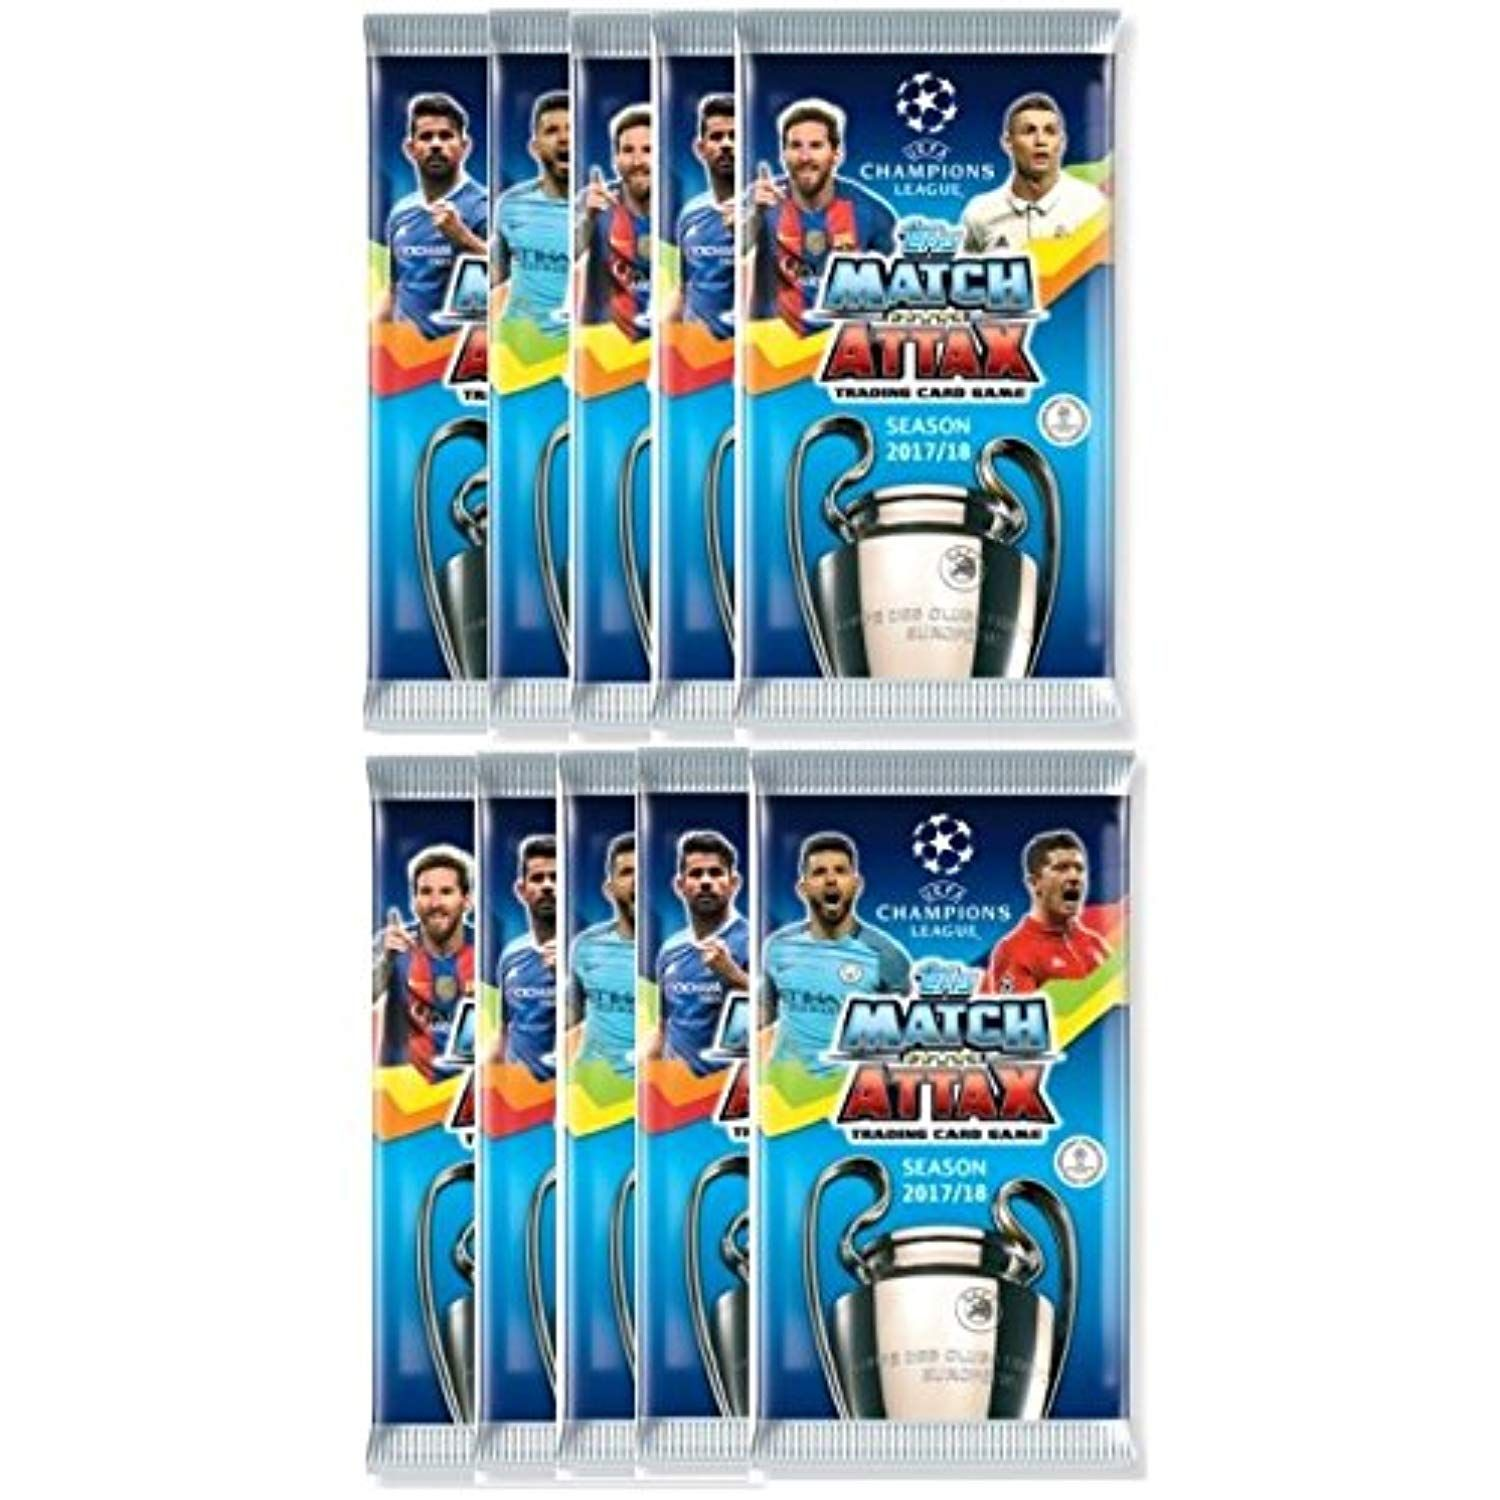 2017 2018 Topps Uefa Champions League Match Attax Soccer Cards Ten 10 9 Card Packs 90 Cards Look For Stars Griezmann Soccer Cards Uefa Champions League